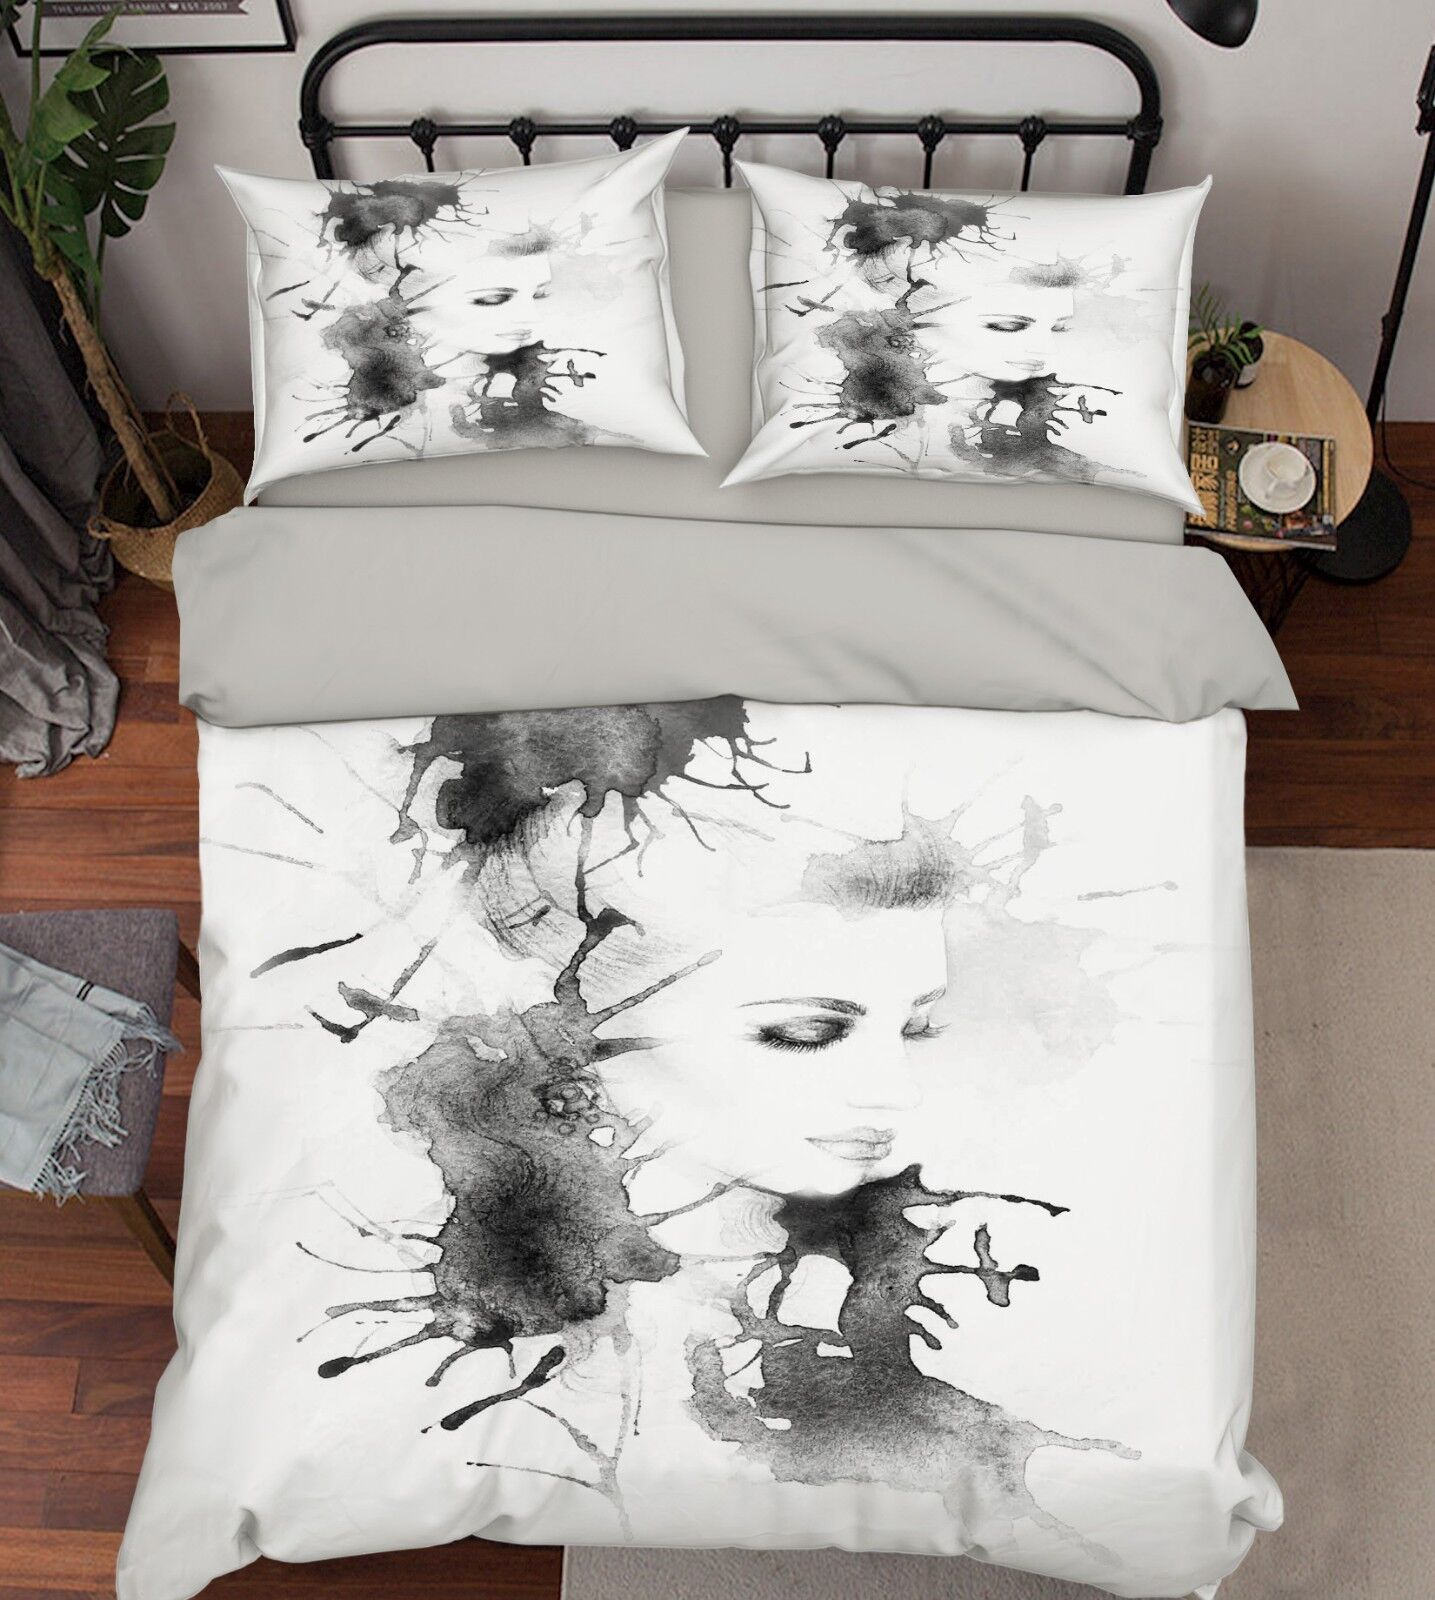 3D Ink Girl Art 656 Bed Pillowcases Quilt Duvet Cover Set Single King UK Summer